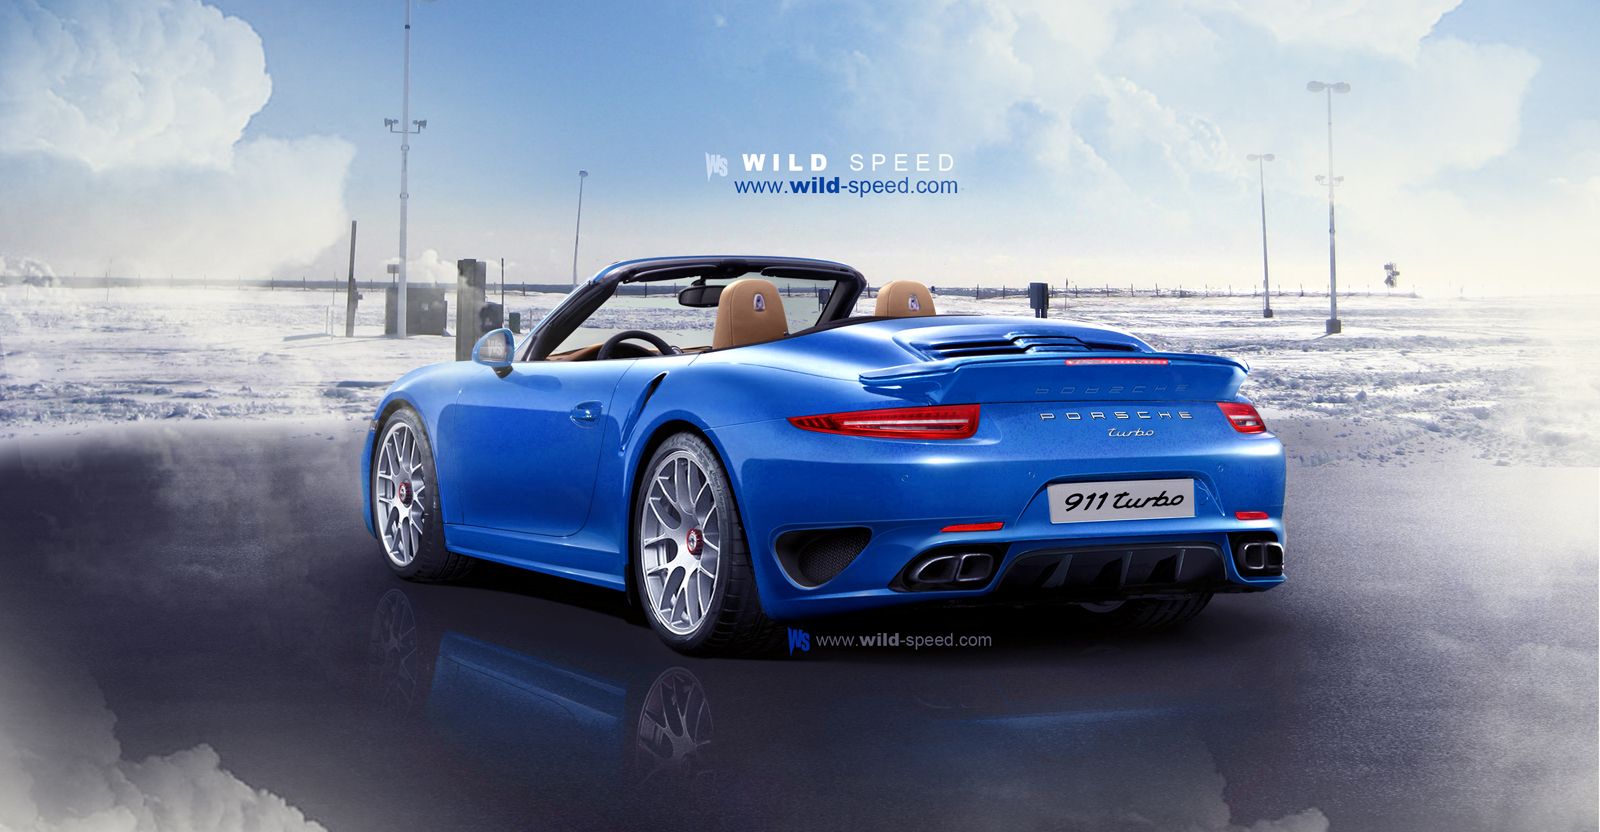 2013 porsche 911 991 turbo cabriolet rendering nordschleife autoblahg. Black Bedroom Furniture Sets. Home Design Ideas